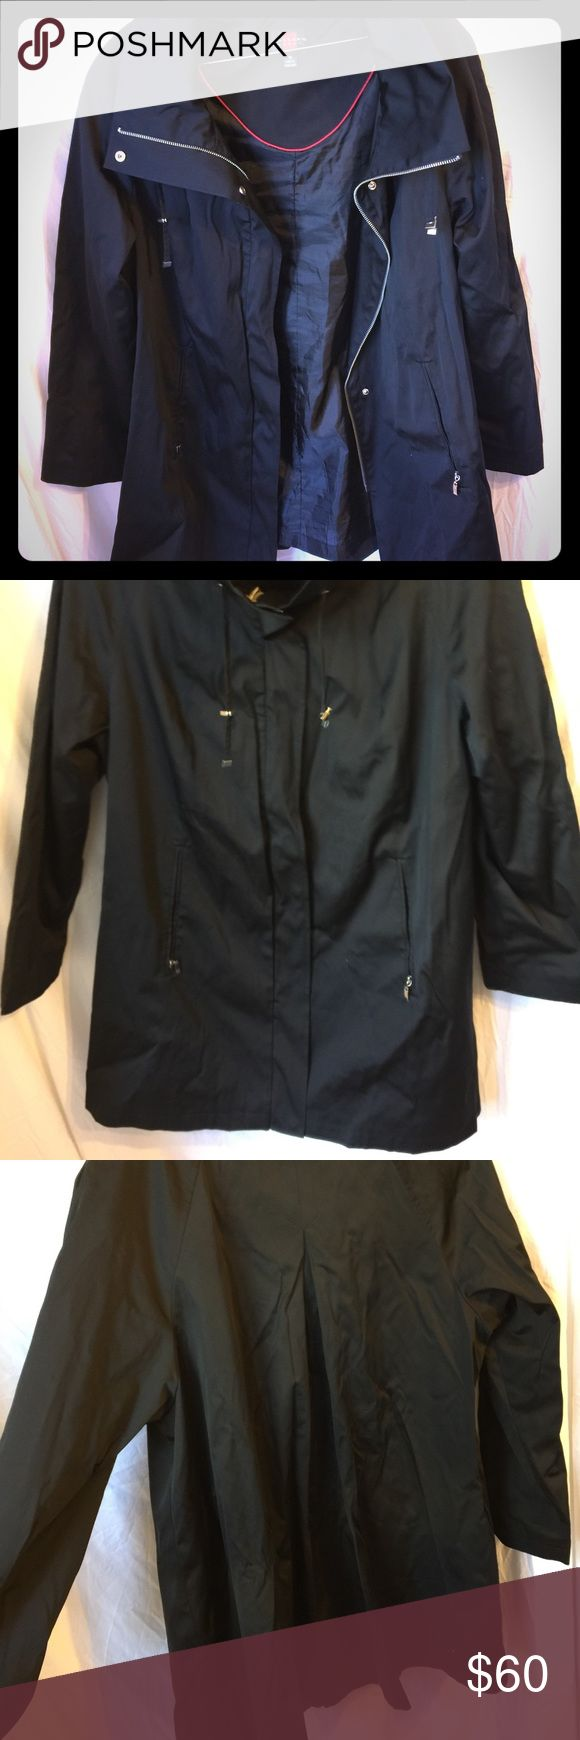 Gallery A-Line Water Resistant Coat Size 1X Excellent condition.  Never actually been worn just been in my storage in an airtight container (which is why it's a bit wrinkled in the pics). One snap is broken but this has a zipper closure. I will post measurements asap! Gallery Jackets & Coats